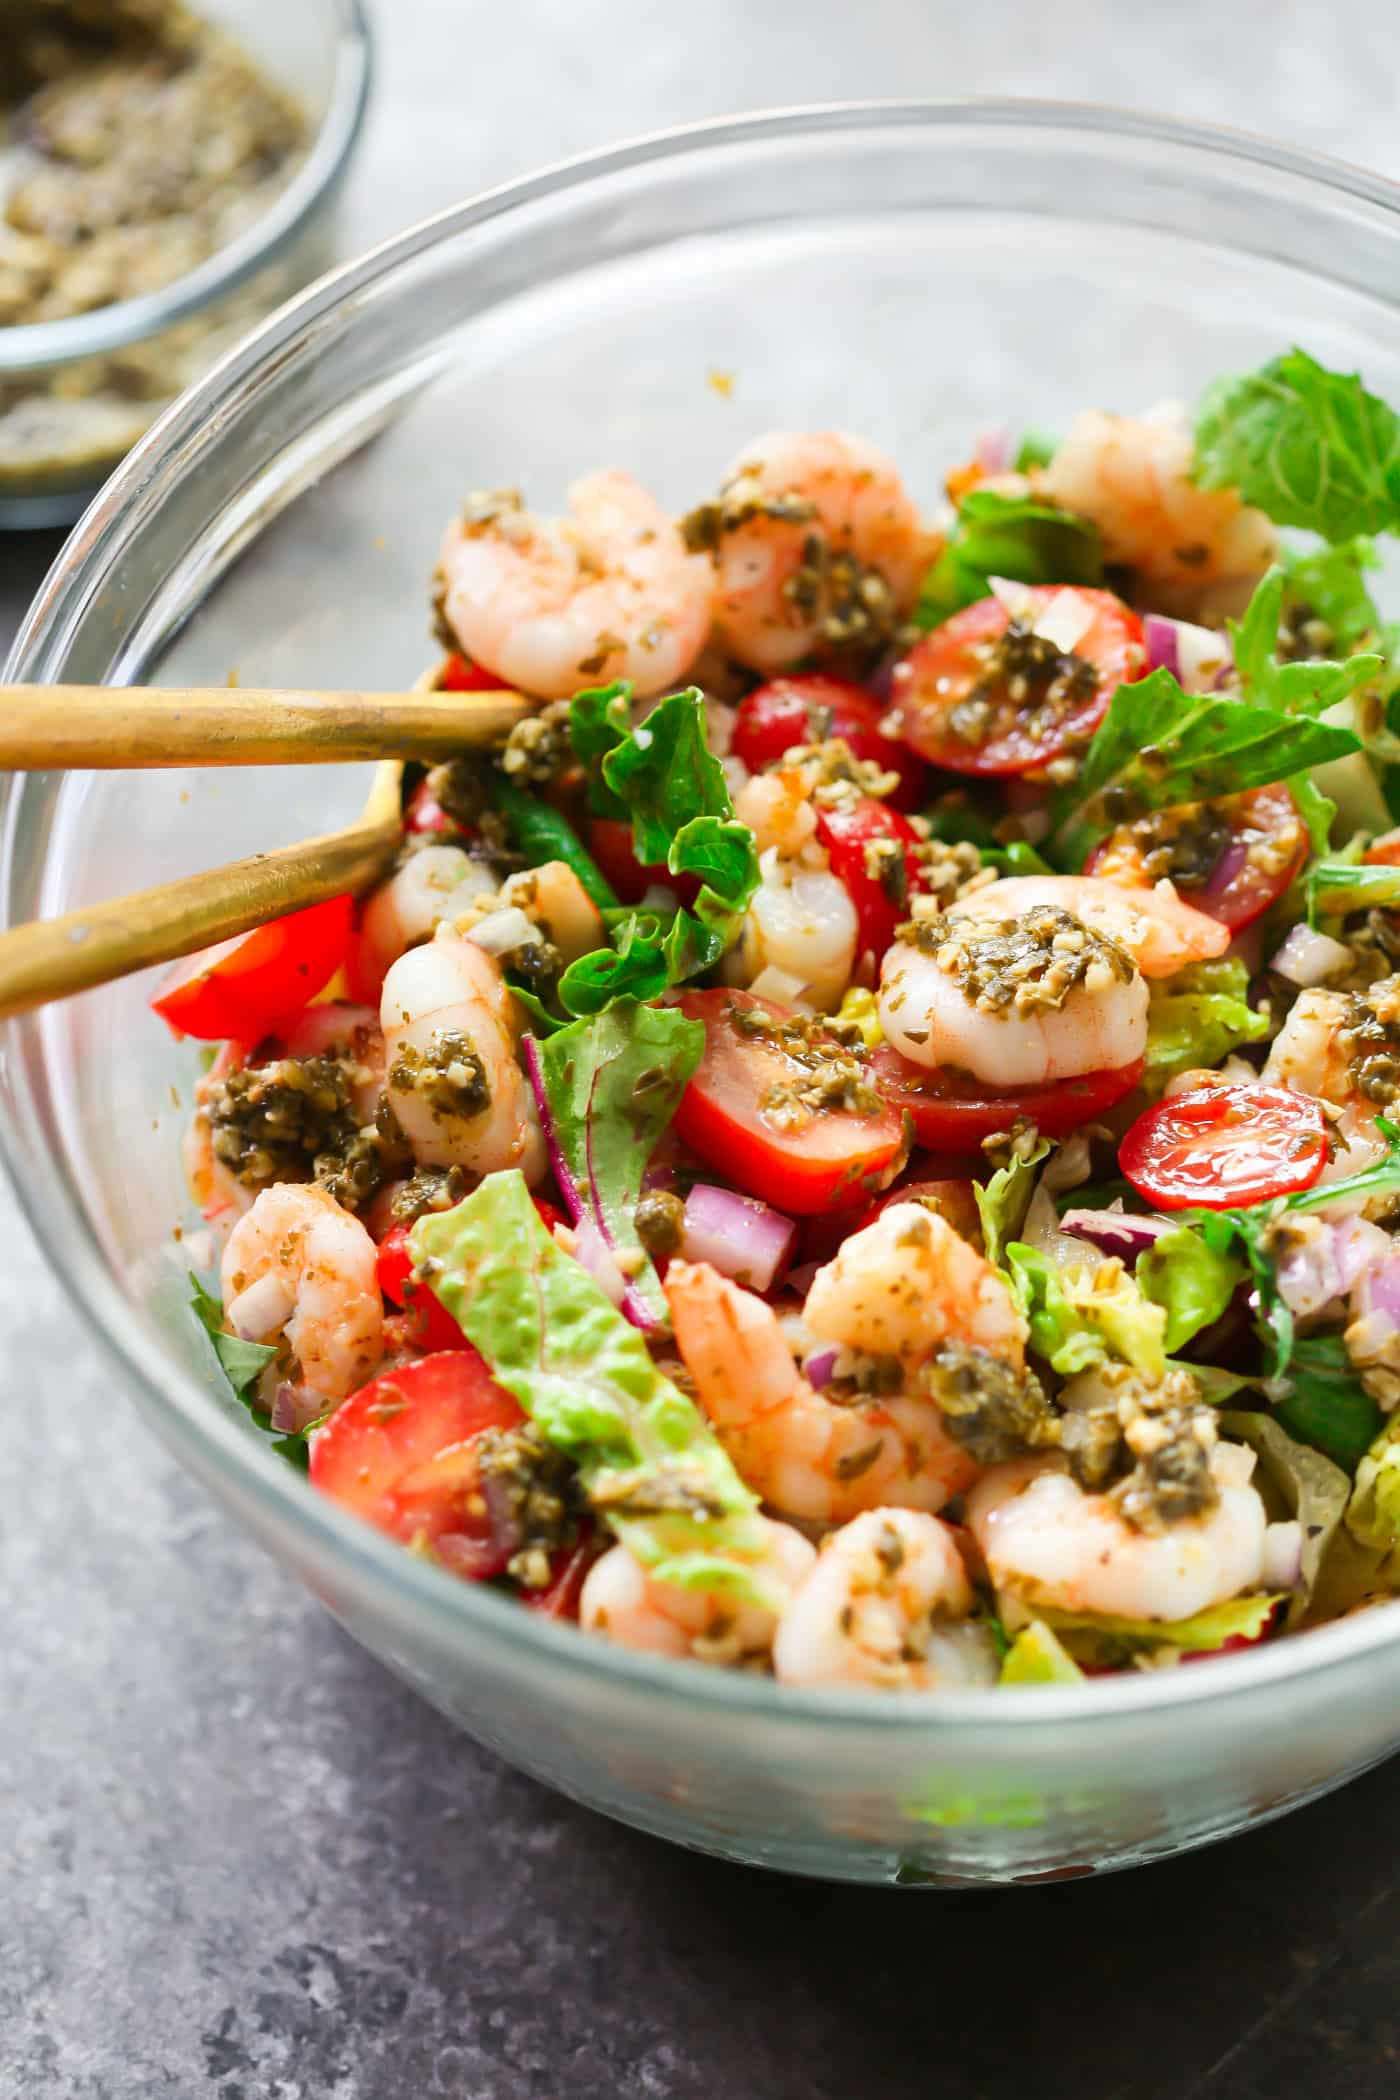 This Pesto Shrimp Tomato Salad Recipe is ready in 10 minutes and it's a perfect quick lunch or light dinner meal for the week. Enjoy!